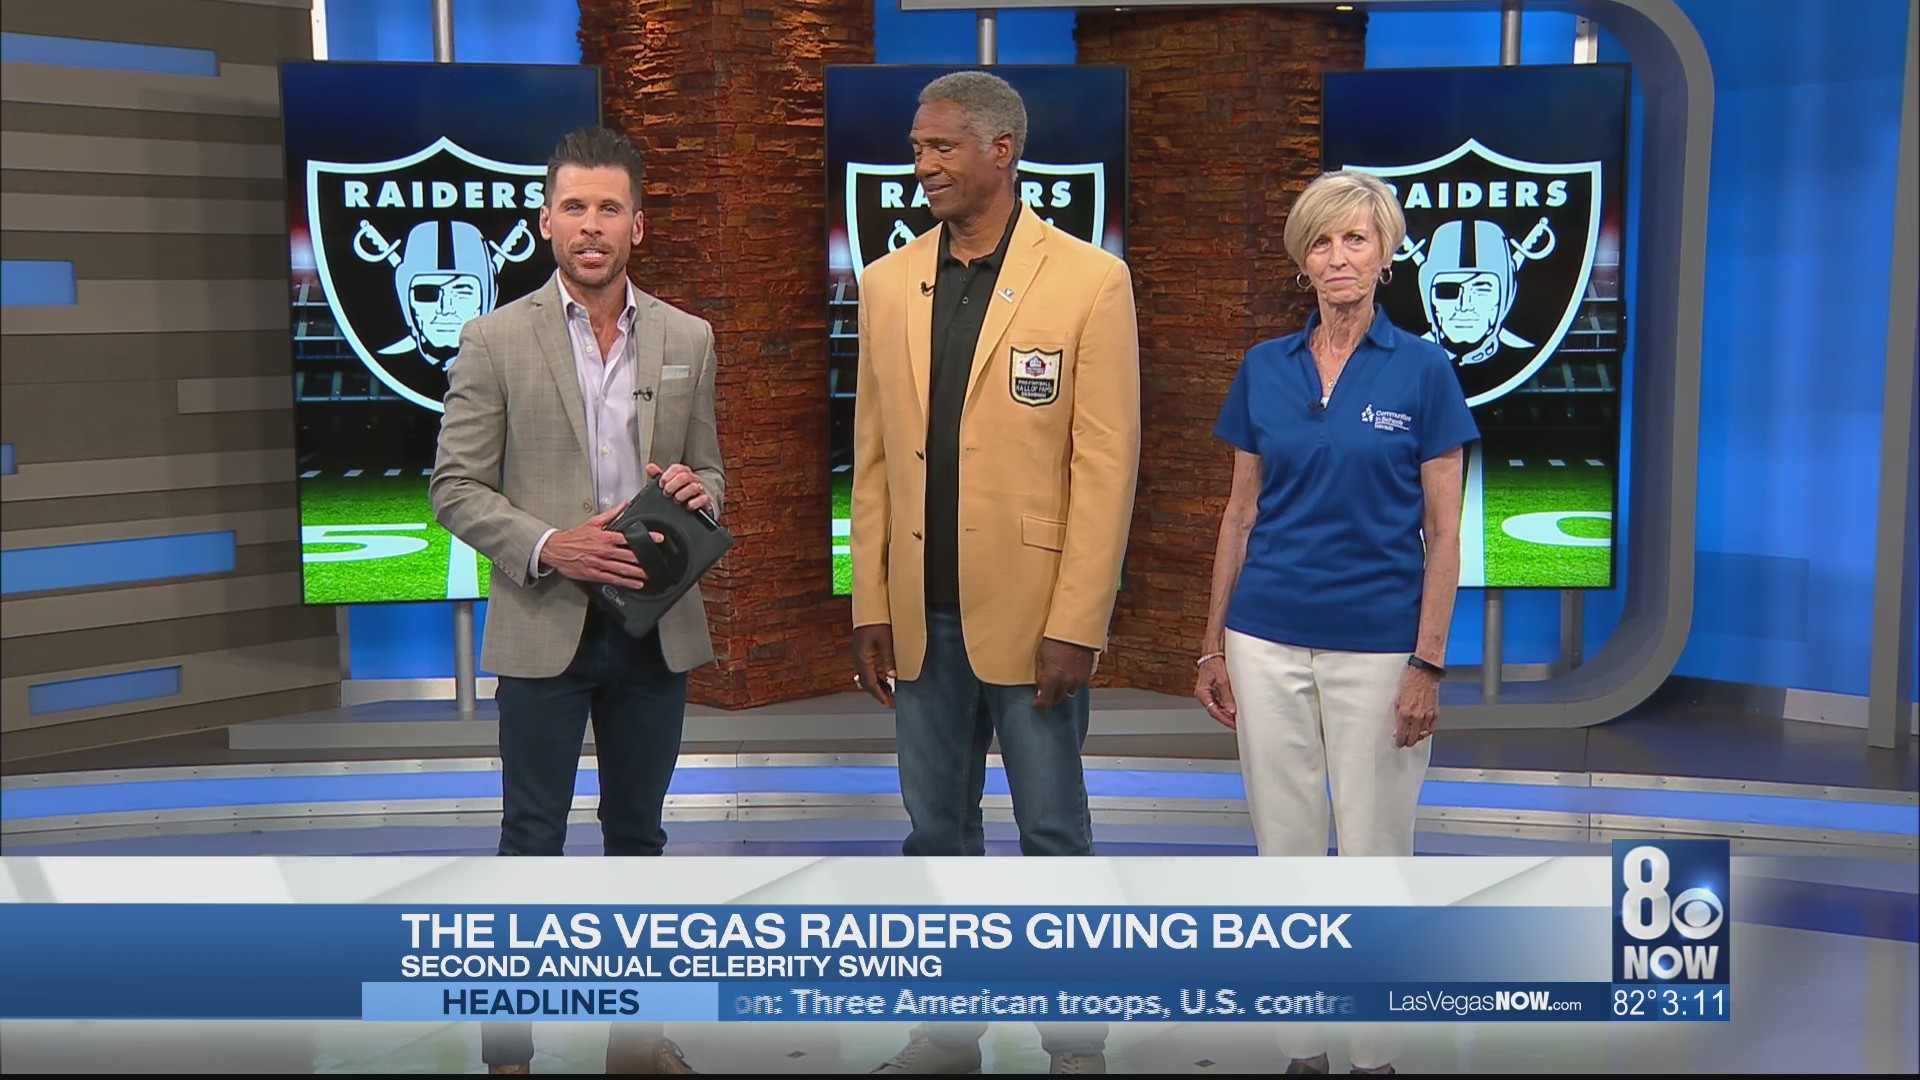 The Raiders are giving back to Las Vegas